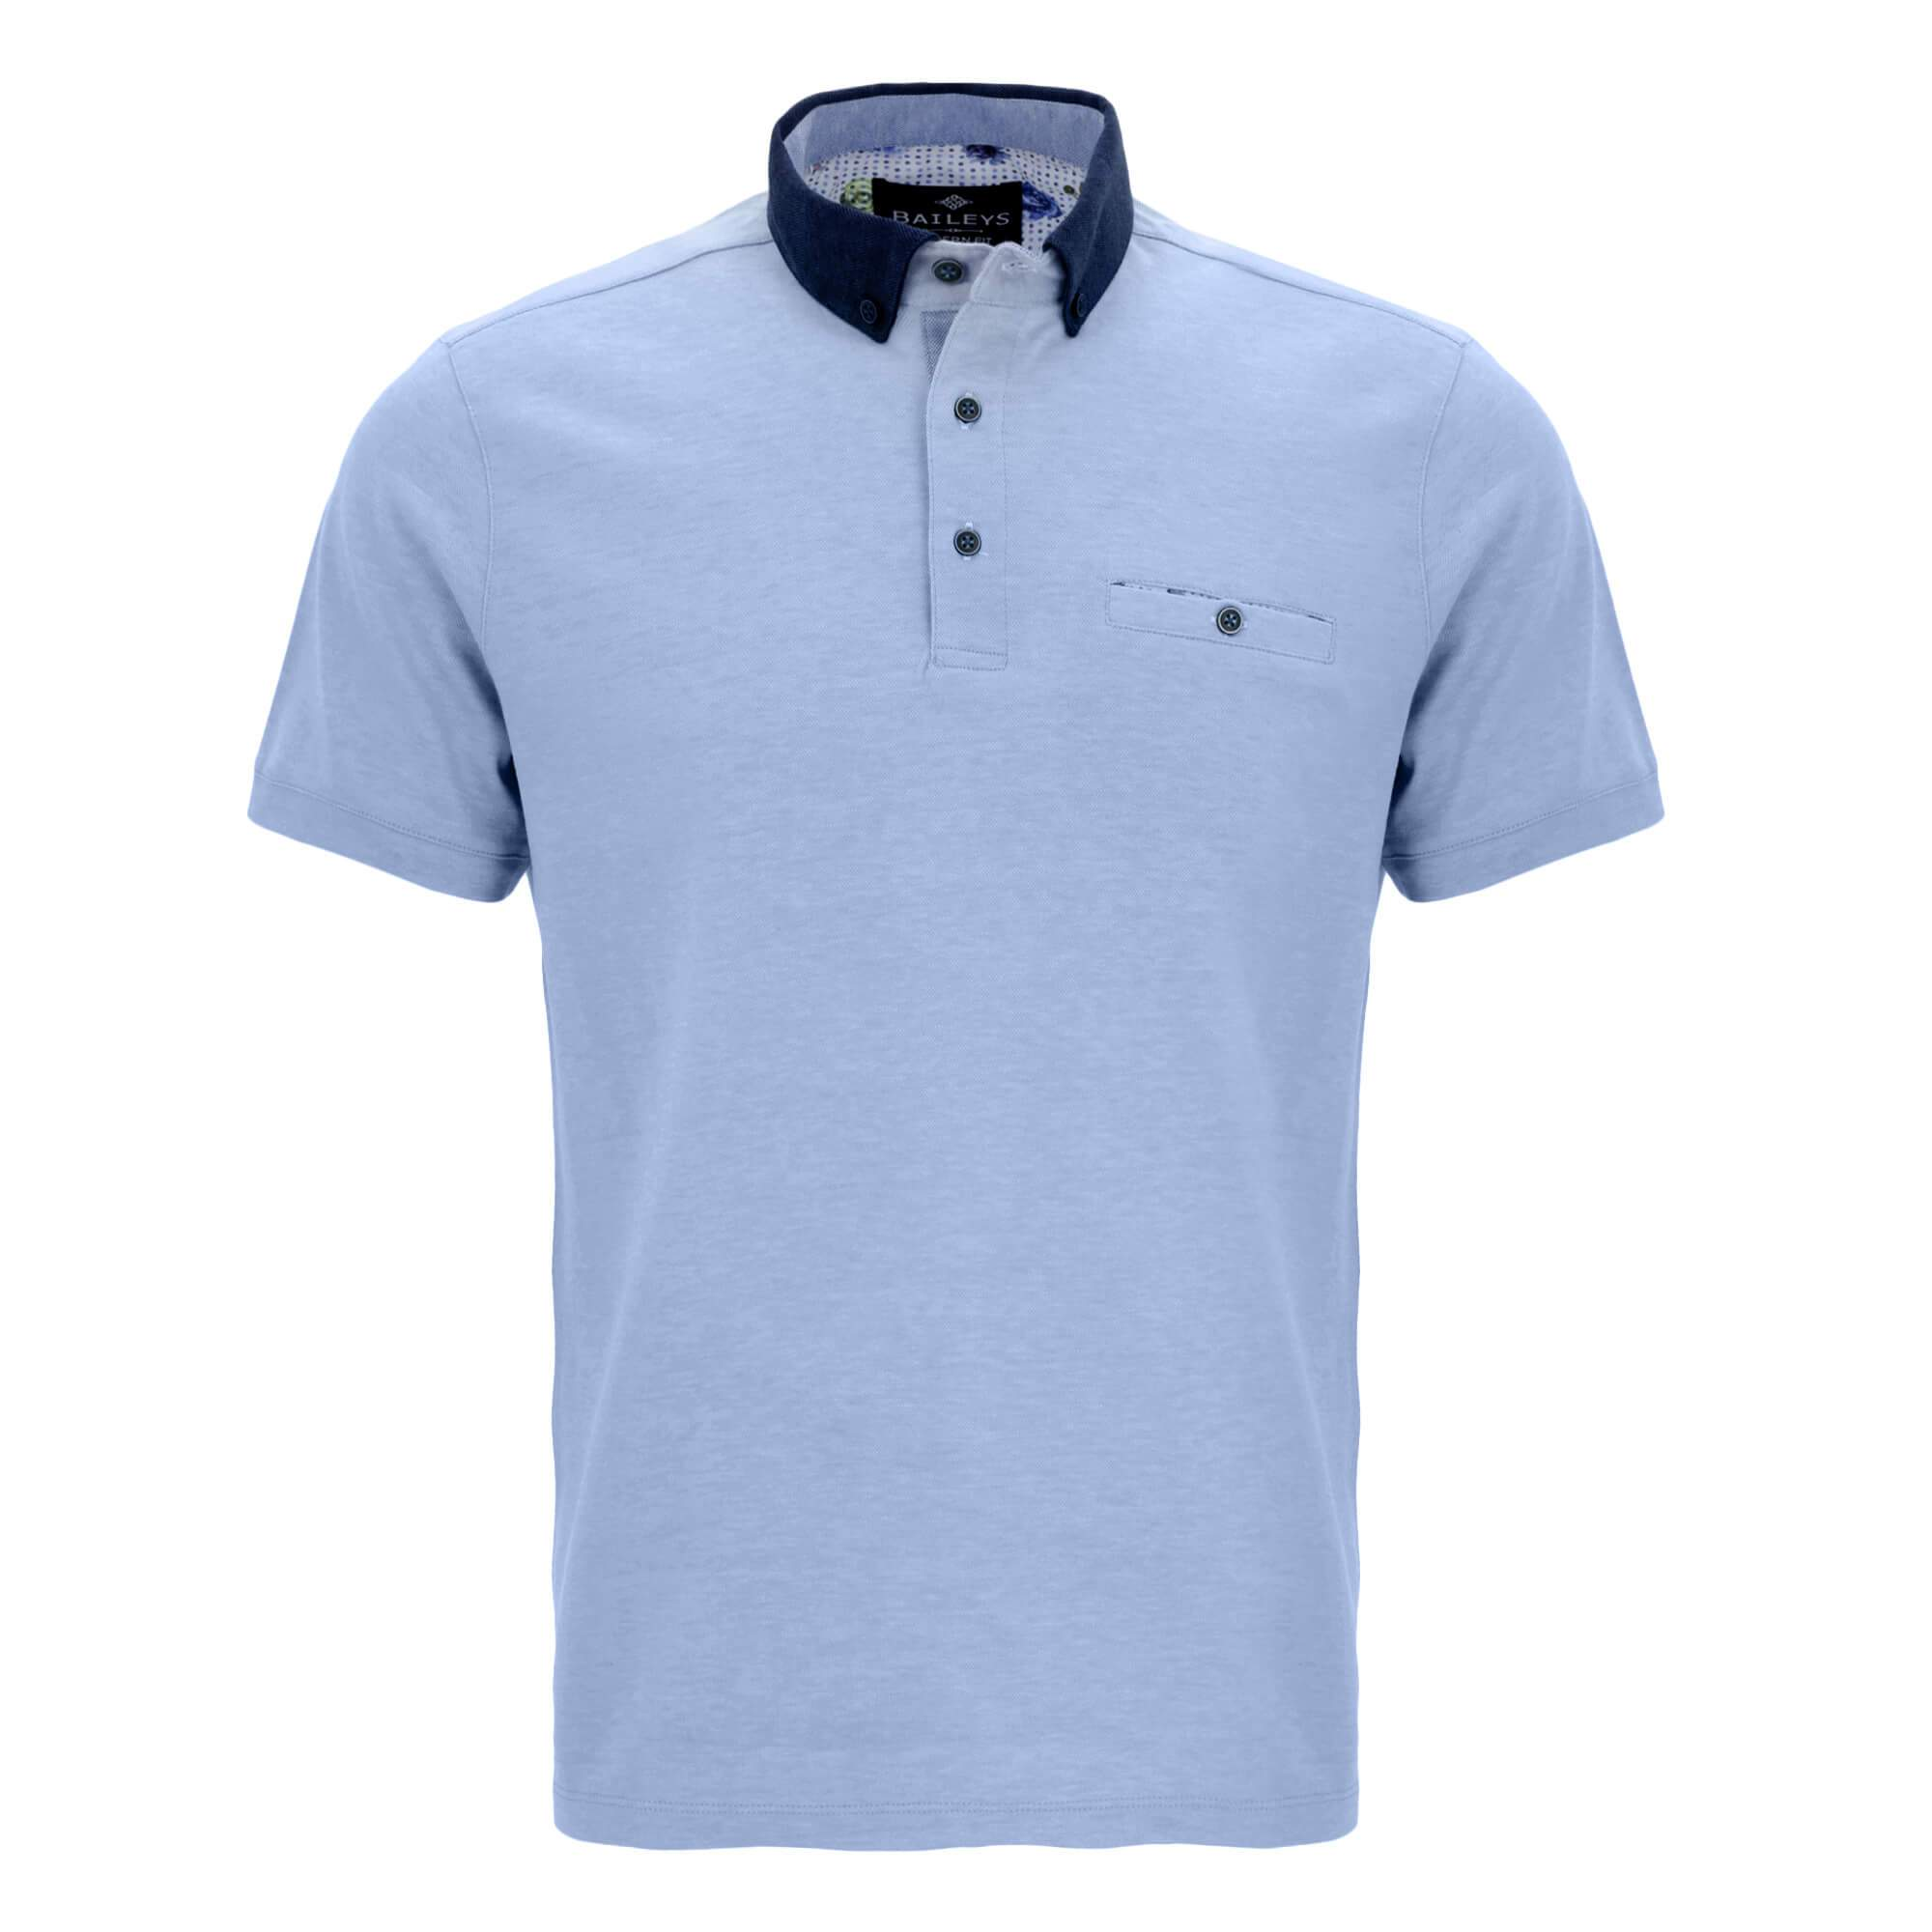 Polo jaspeado slim fit 916599